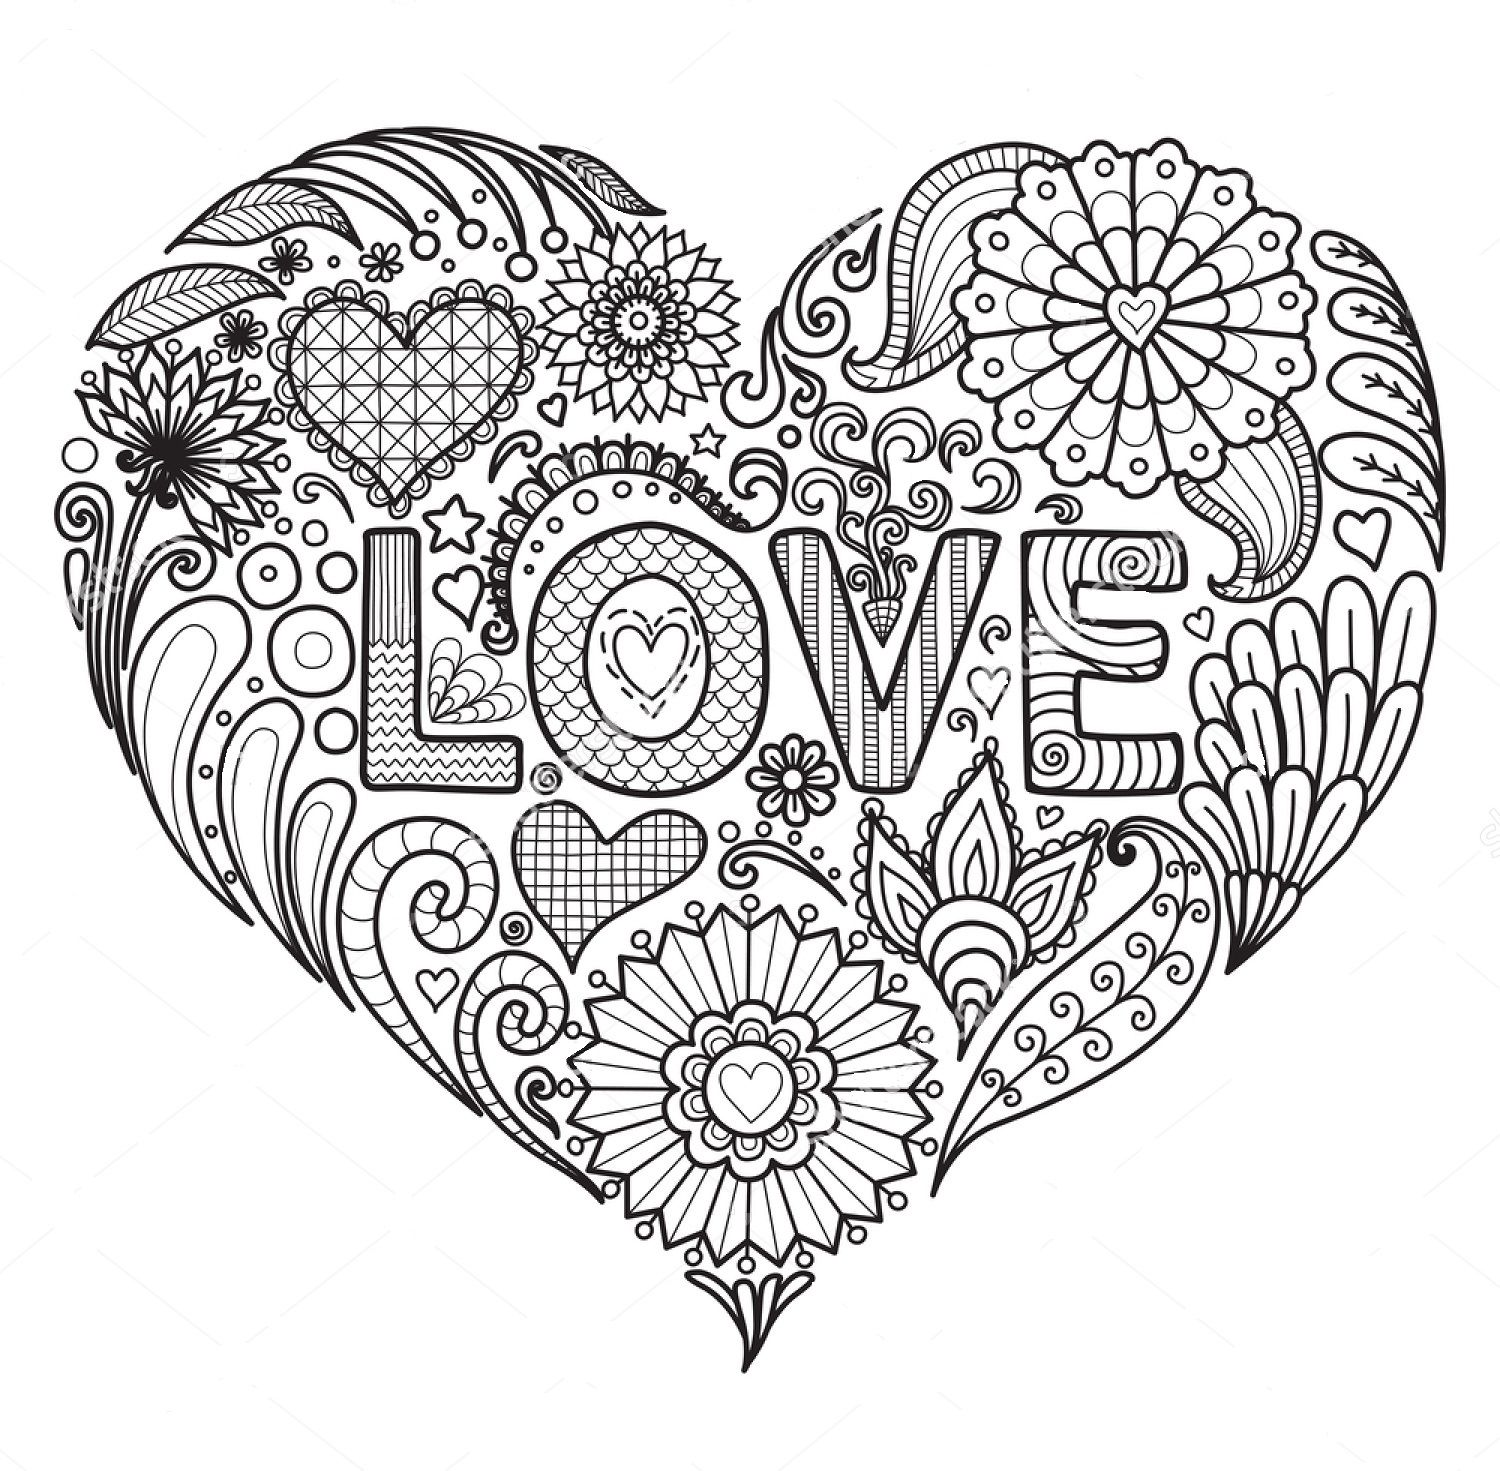 Heart Coloring Sheet Zip You'll Love